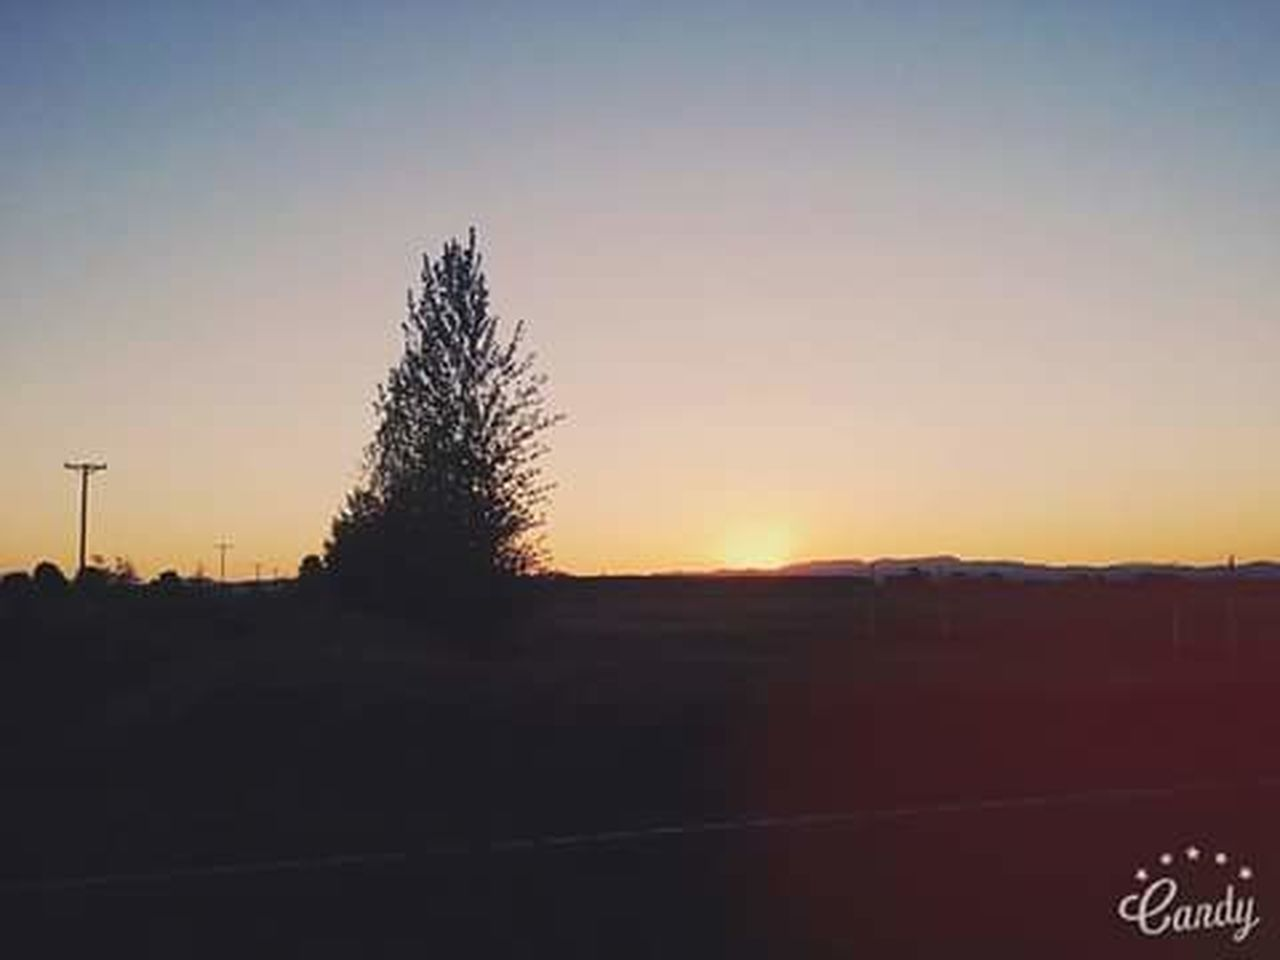 sunset, silhouette, beauty in nature, tranquility, tree, nature, no people, sky, scenics, outdoors, day